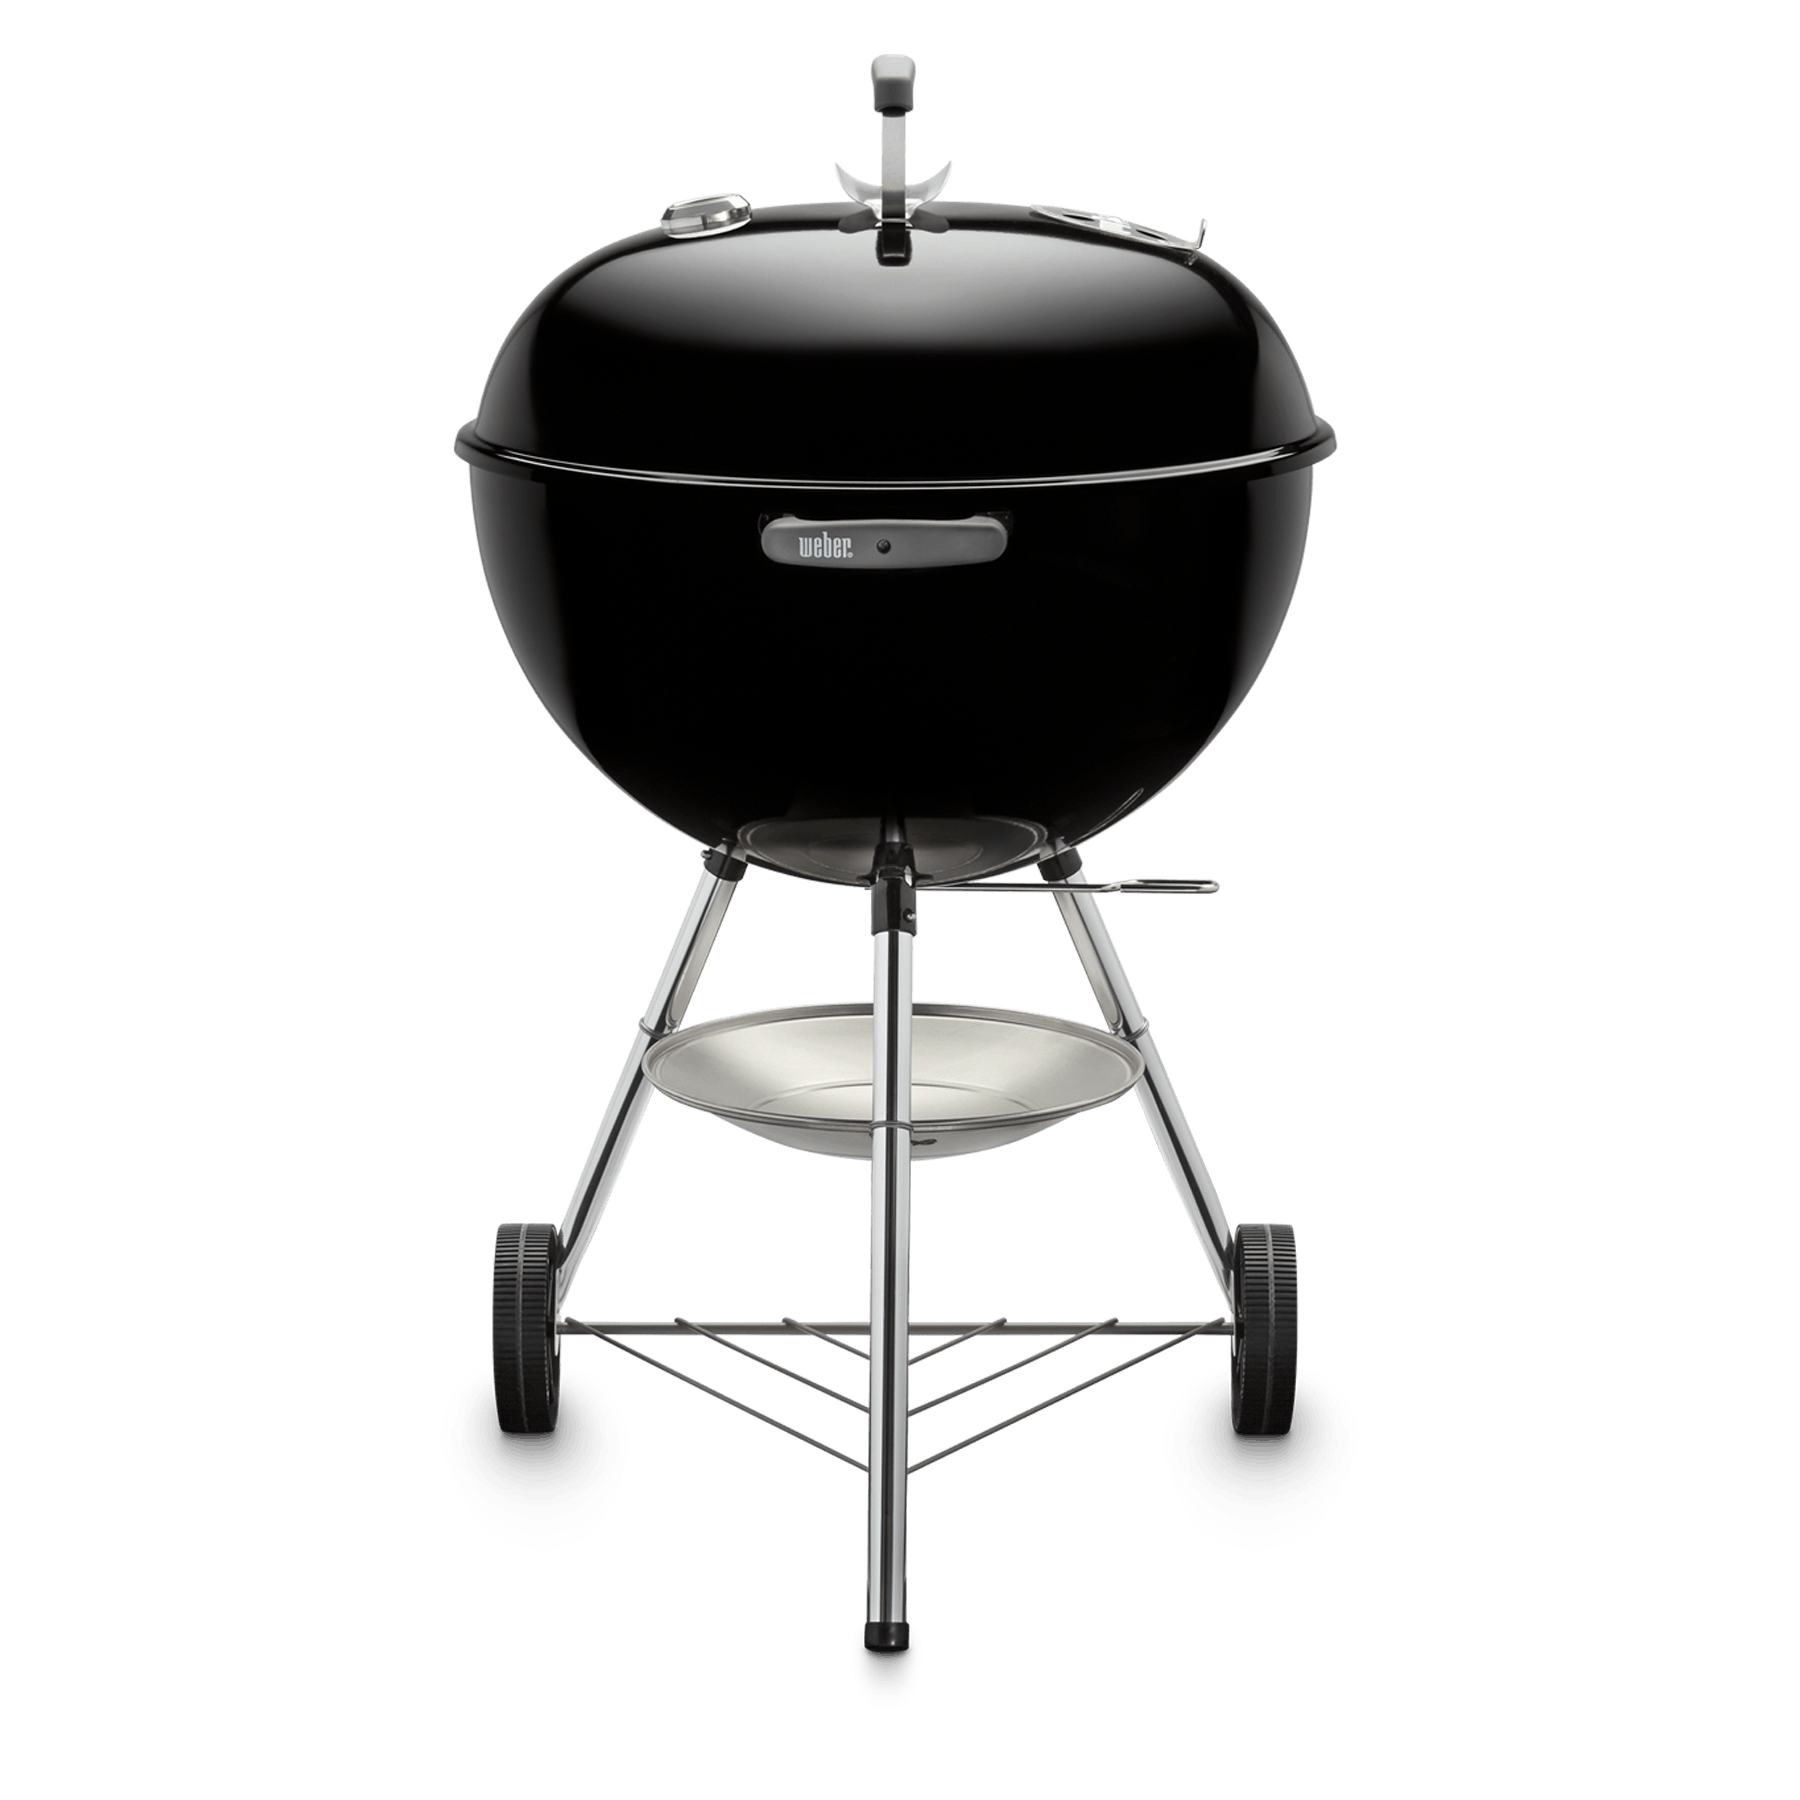 Original Kettle Kulgrill 57 cm